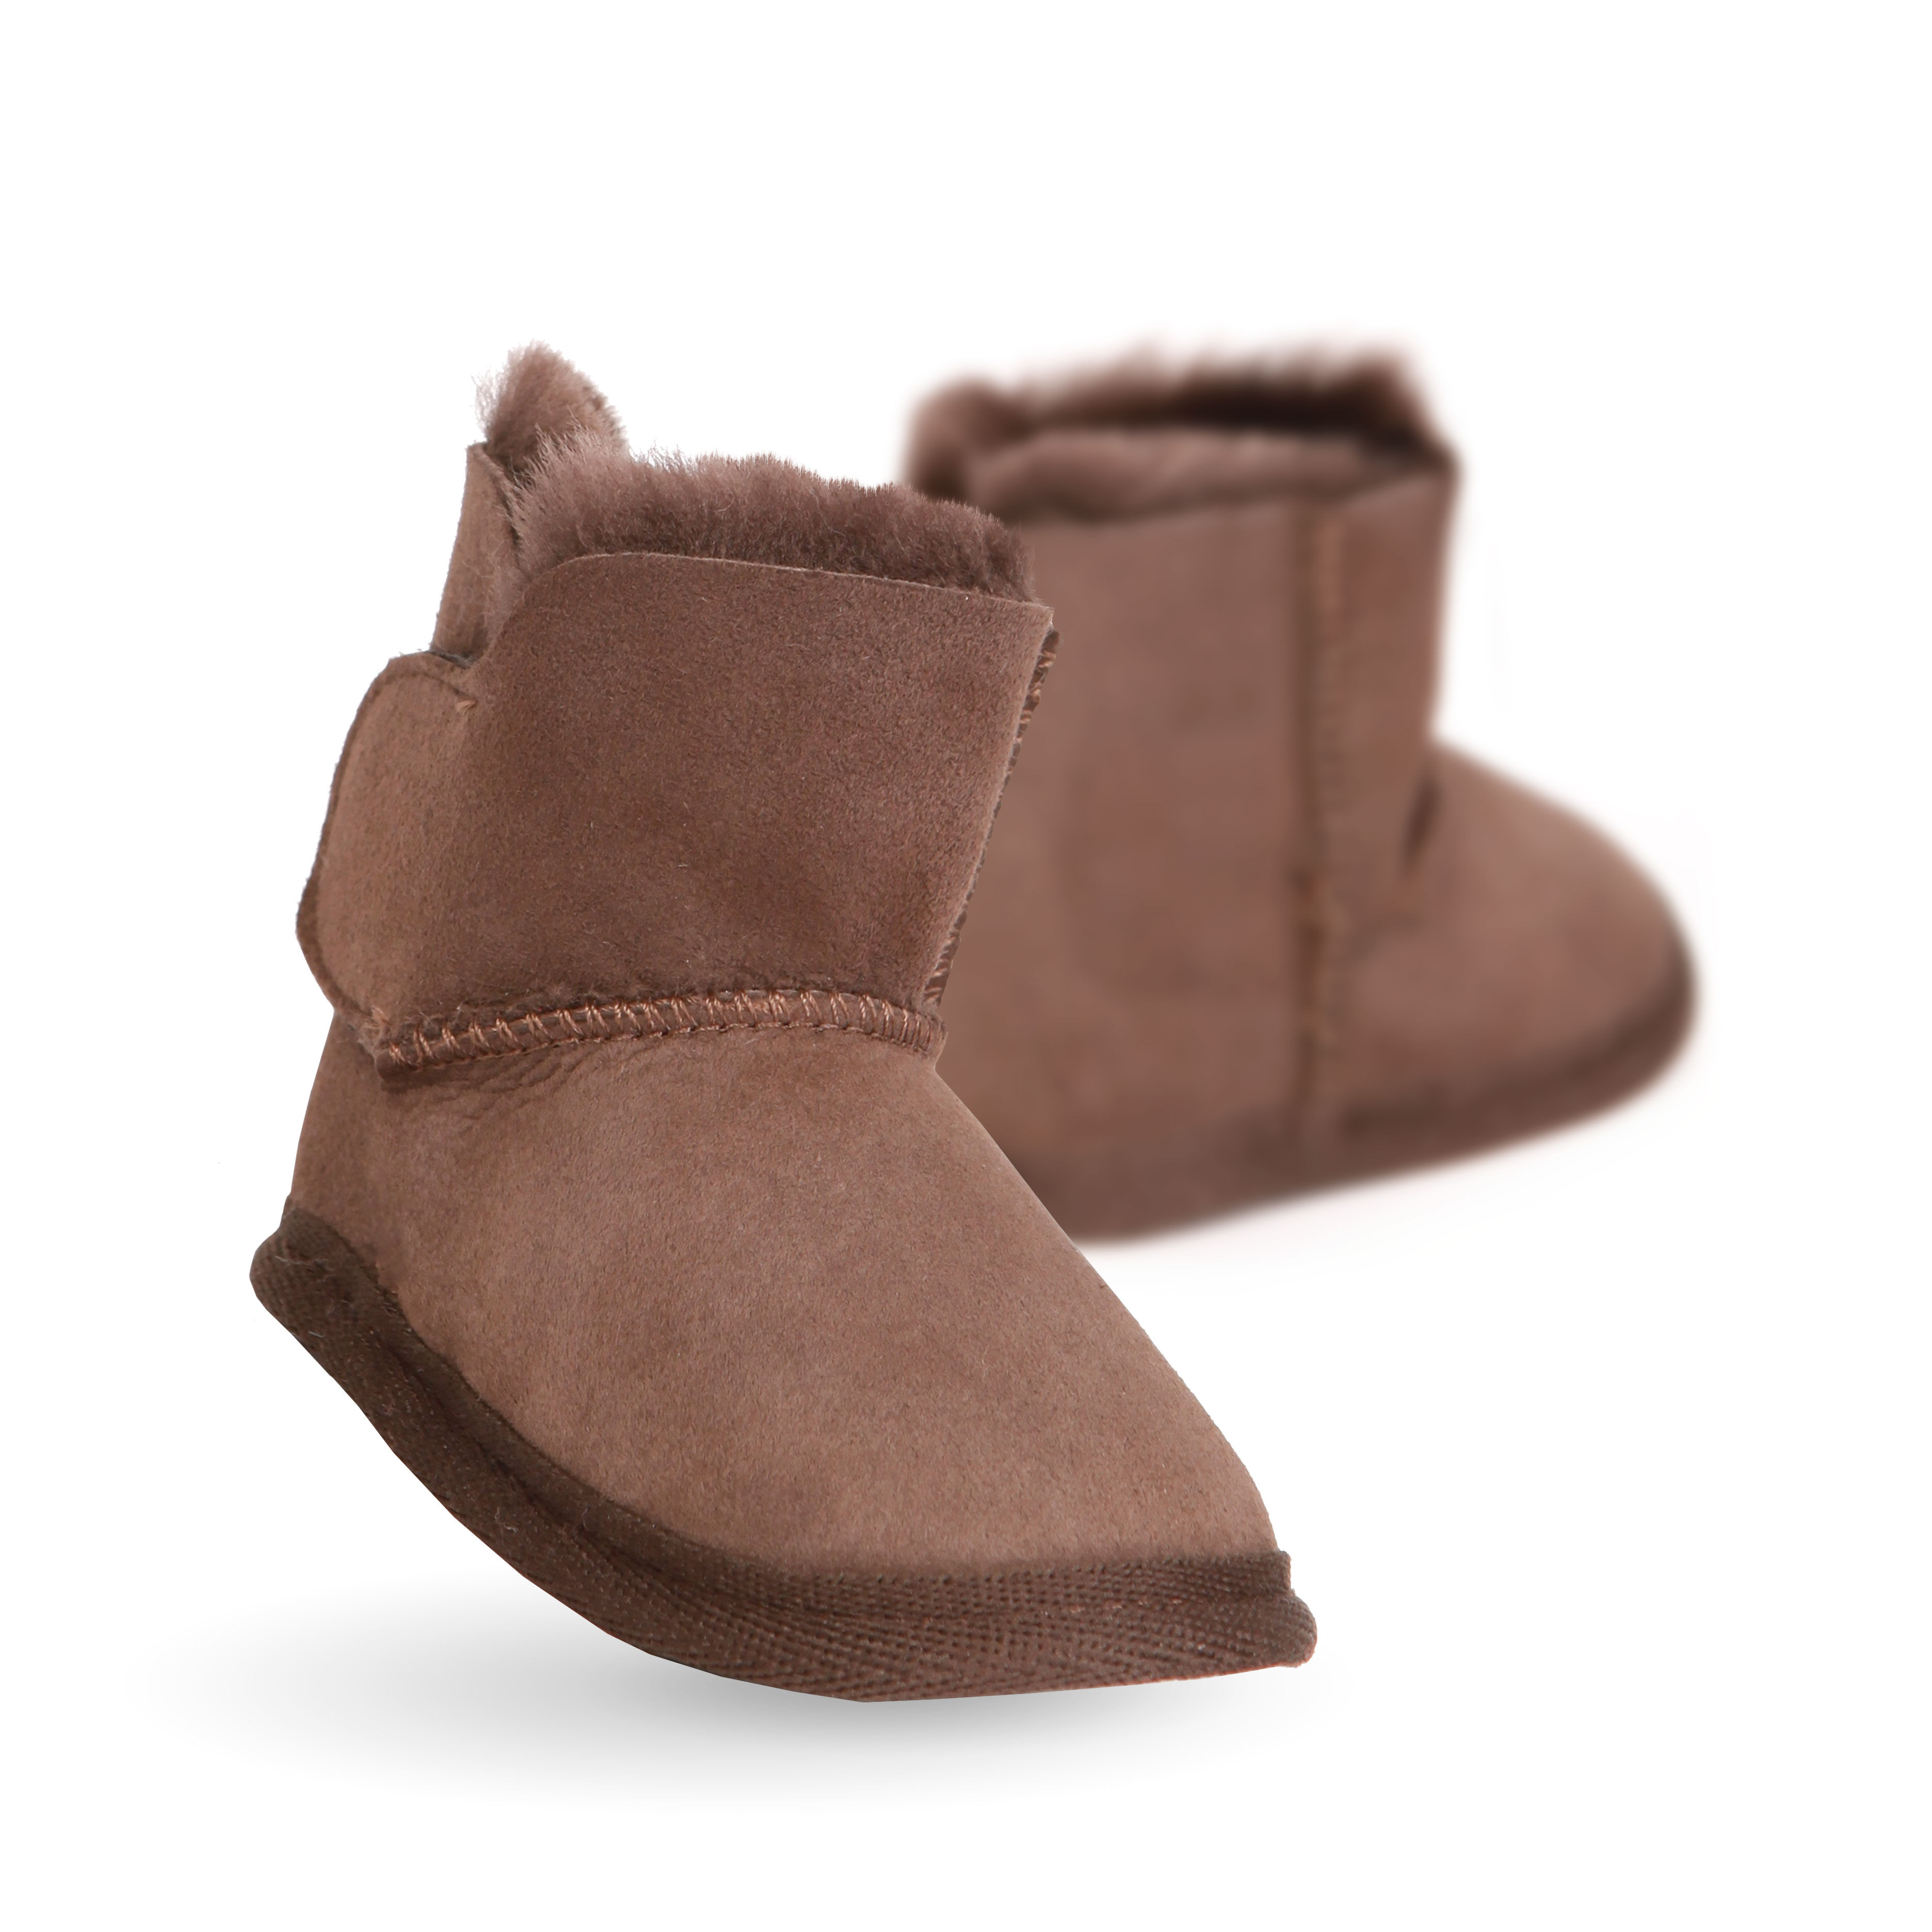 07ac74c8d3c8a Emu Baby Booties - Baby Footwear NZ|Baby Shoes|Bobux|Pretty Brave ...